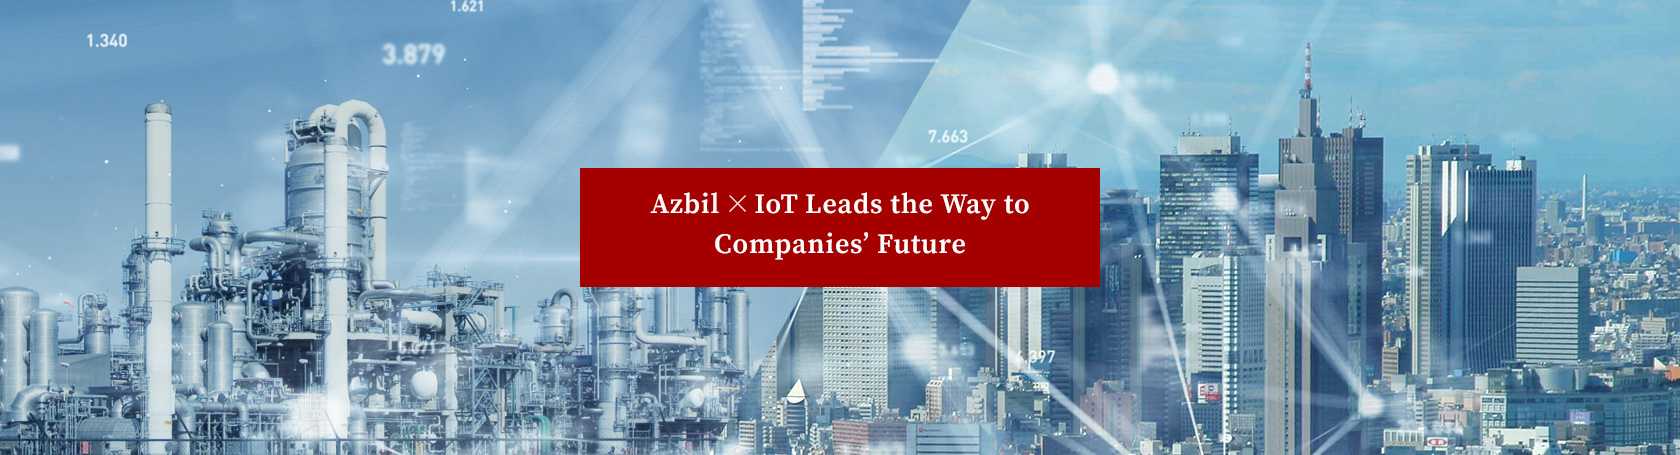 Azbil × IoT Leads the Way to Companies' Future